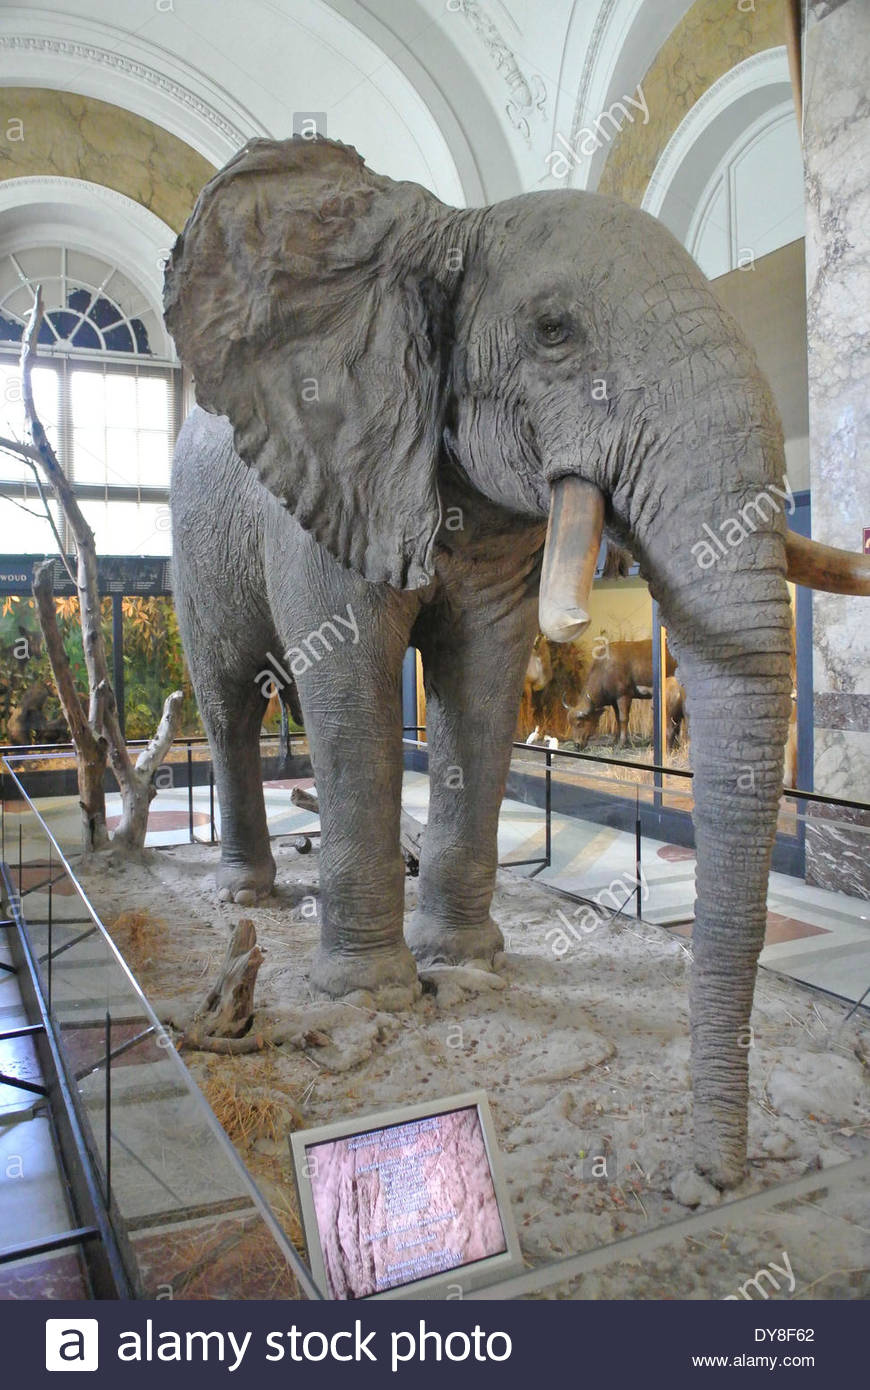 FILE PHOTO - About 1.7 tons of ivory, with an estimated value of 680,000 euros ($930,000) seized over recent years is destroyed today, April 9, 2014, at the Royal Museum for Central Africa. Belgium becomes the latest country to destroy its ivory stockpile as Europe takes a harder look at wildlife trafficking. Reports say, 36.500 elephants are killed for their ivory every year. Ambassadors and dignitaries from various nations, including from the U.S., France, the U.K., and the key elephant-range states of Tanzania and South Africa attended the event. The museum was closed for renovation on 1 De - Stock Image